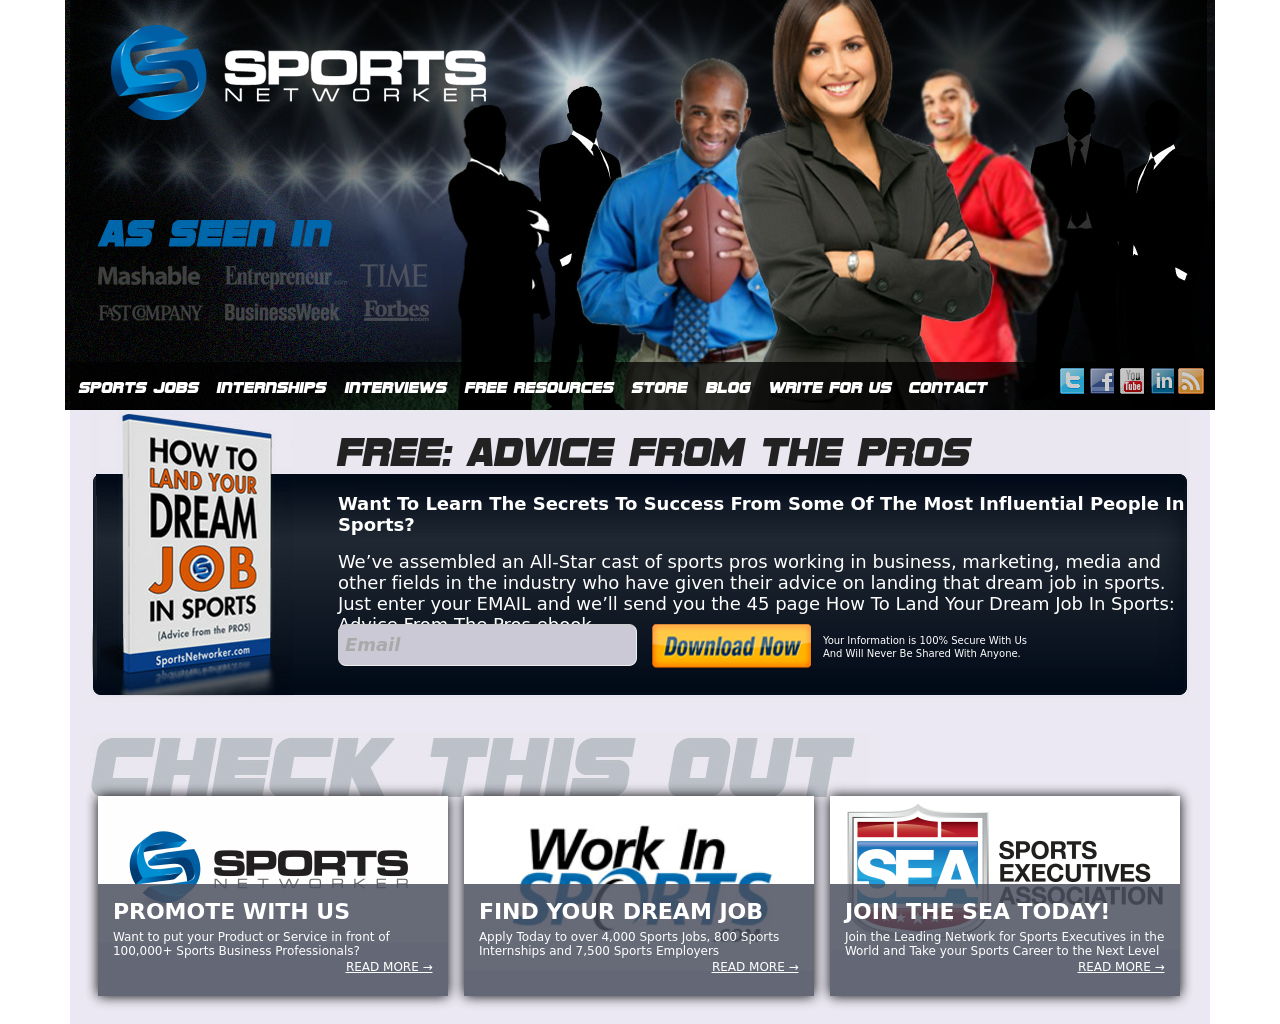 SPORTS-NETWORKER-Advertising-Reviews-Pricing